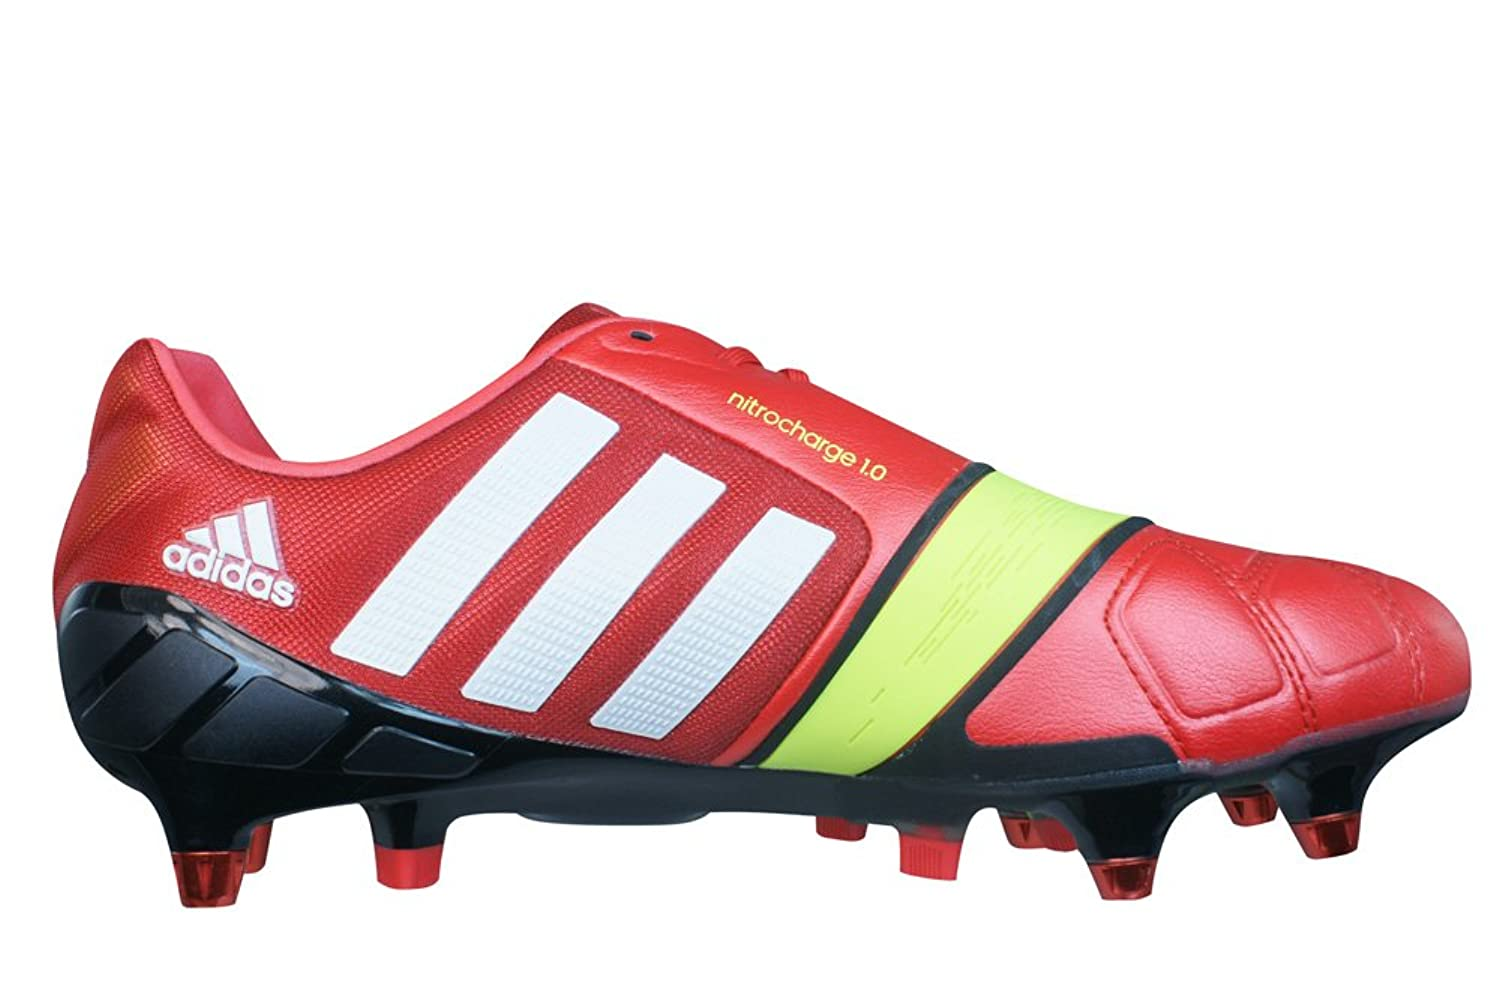 Adidas Nitrocharge 1.0 Rosso d41AcQS